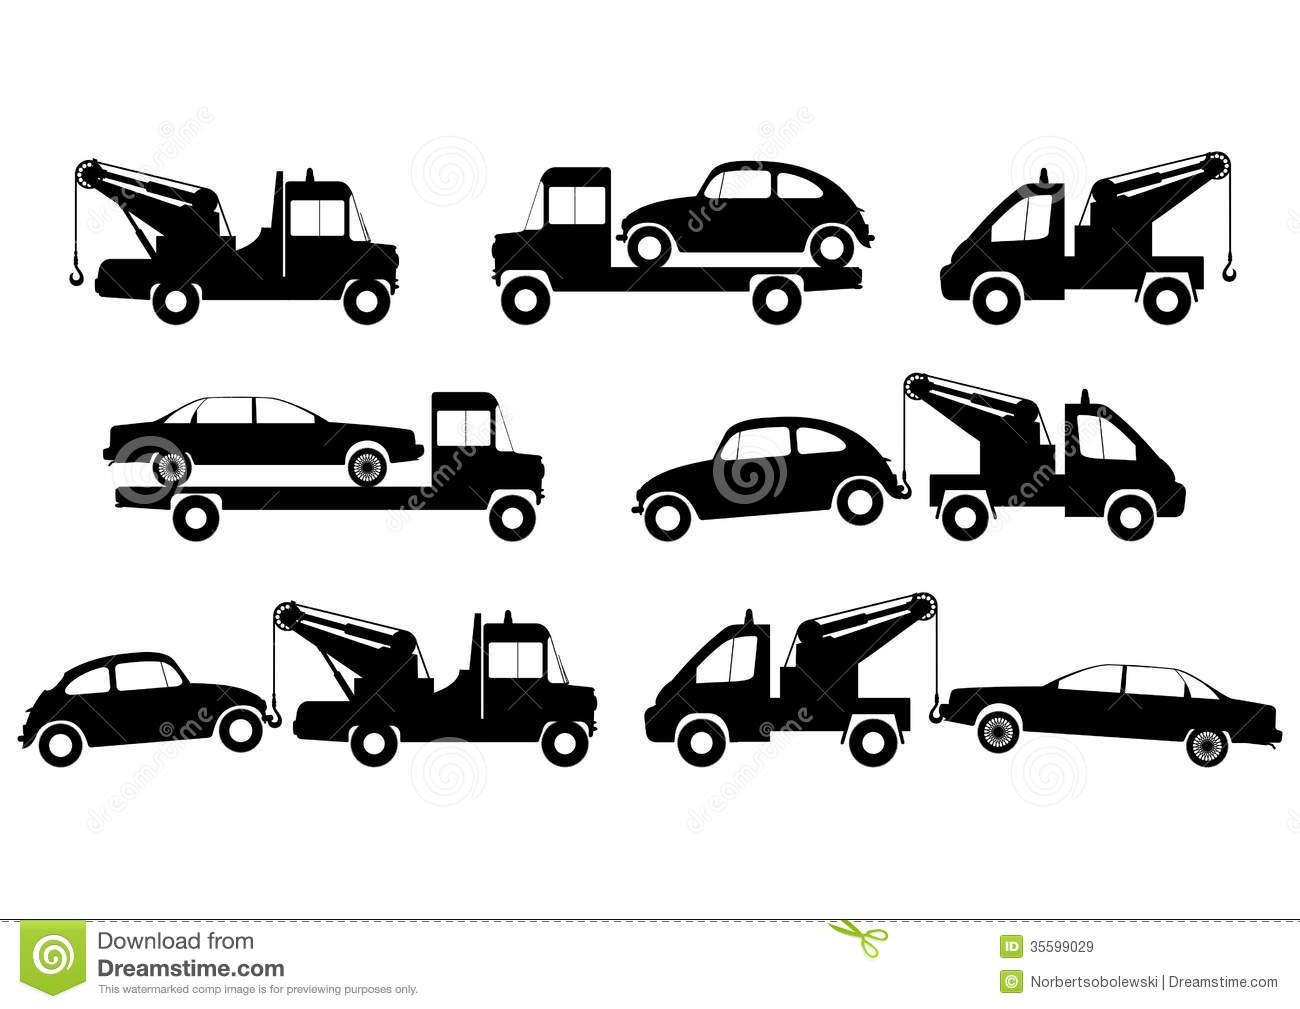 Tow Truck Silhouettes Royalty Free Stock Images